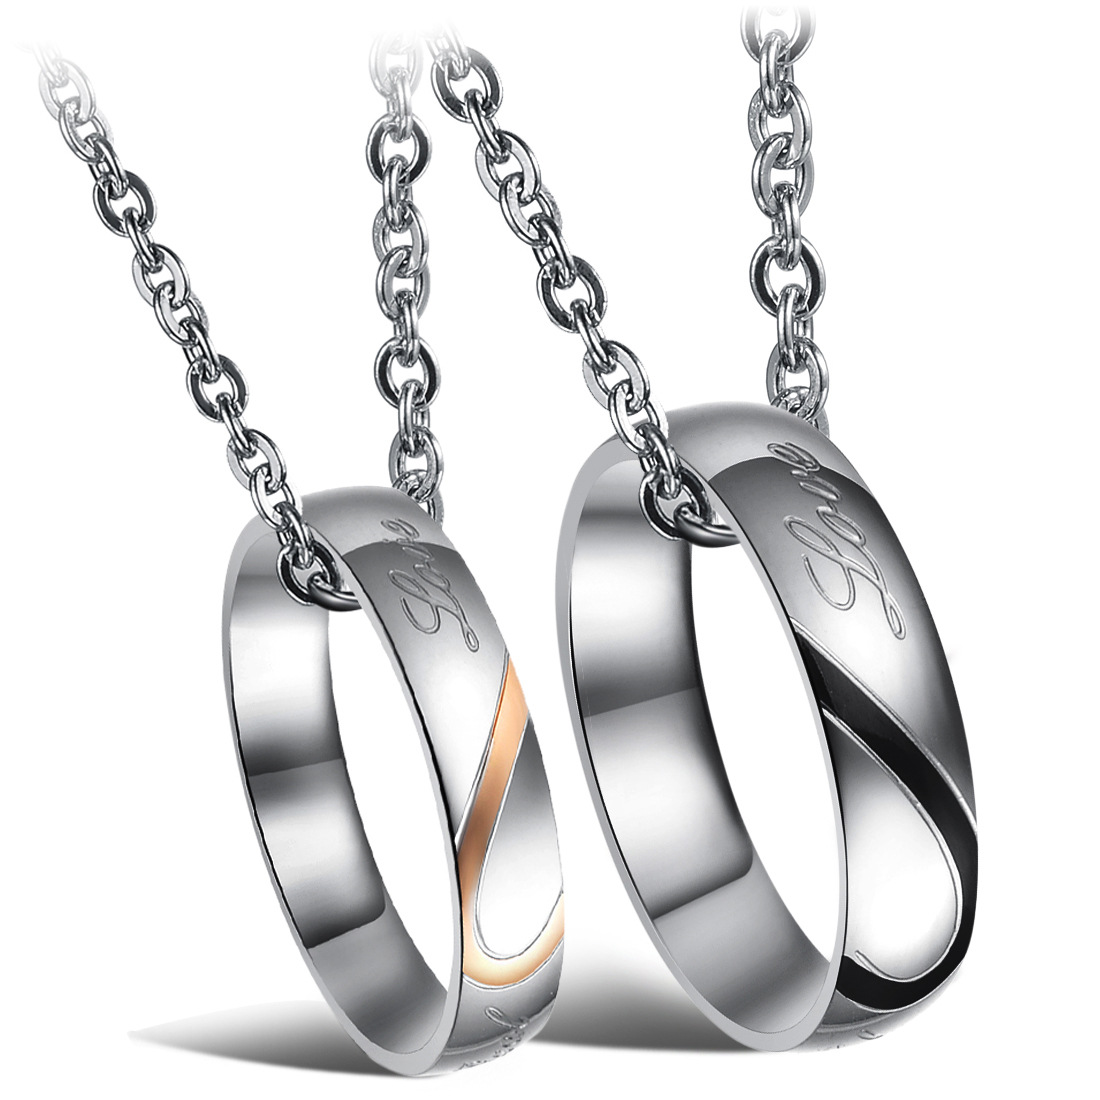 European and American fashion first jewelry heart-shaped puzzle titanium steel ring fashion men and women pendant neck Necklace Valentines Day gift